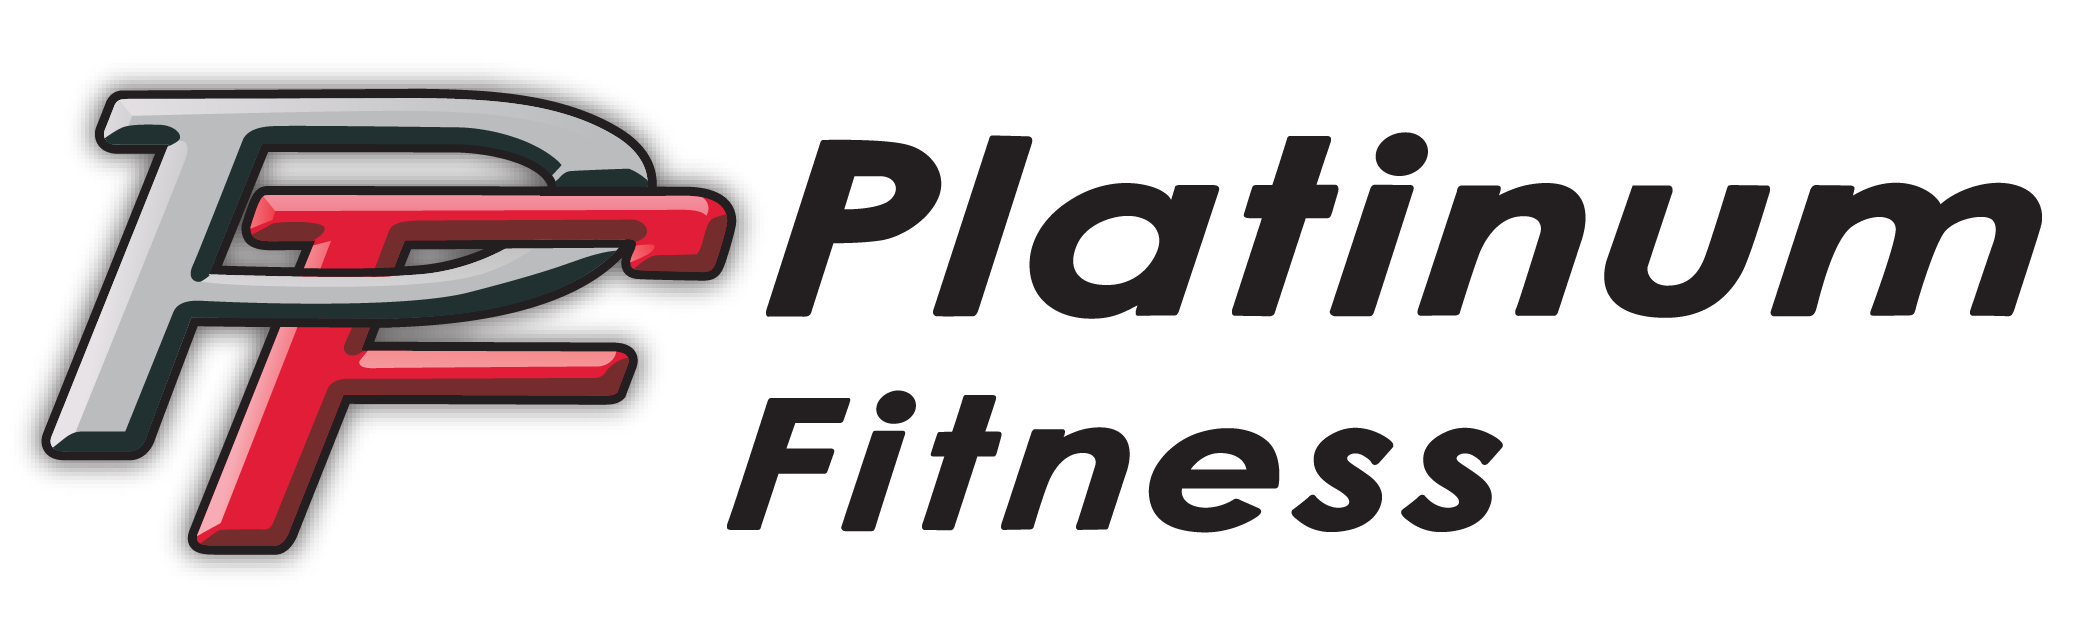 Platinum Fitness - Buffalo Health Club and Fitness Center - 9450 Transit Road, East Amherst , NY 14051